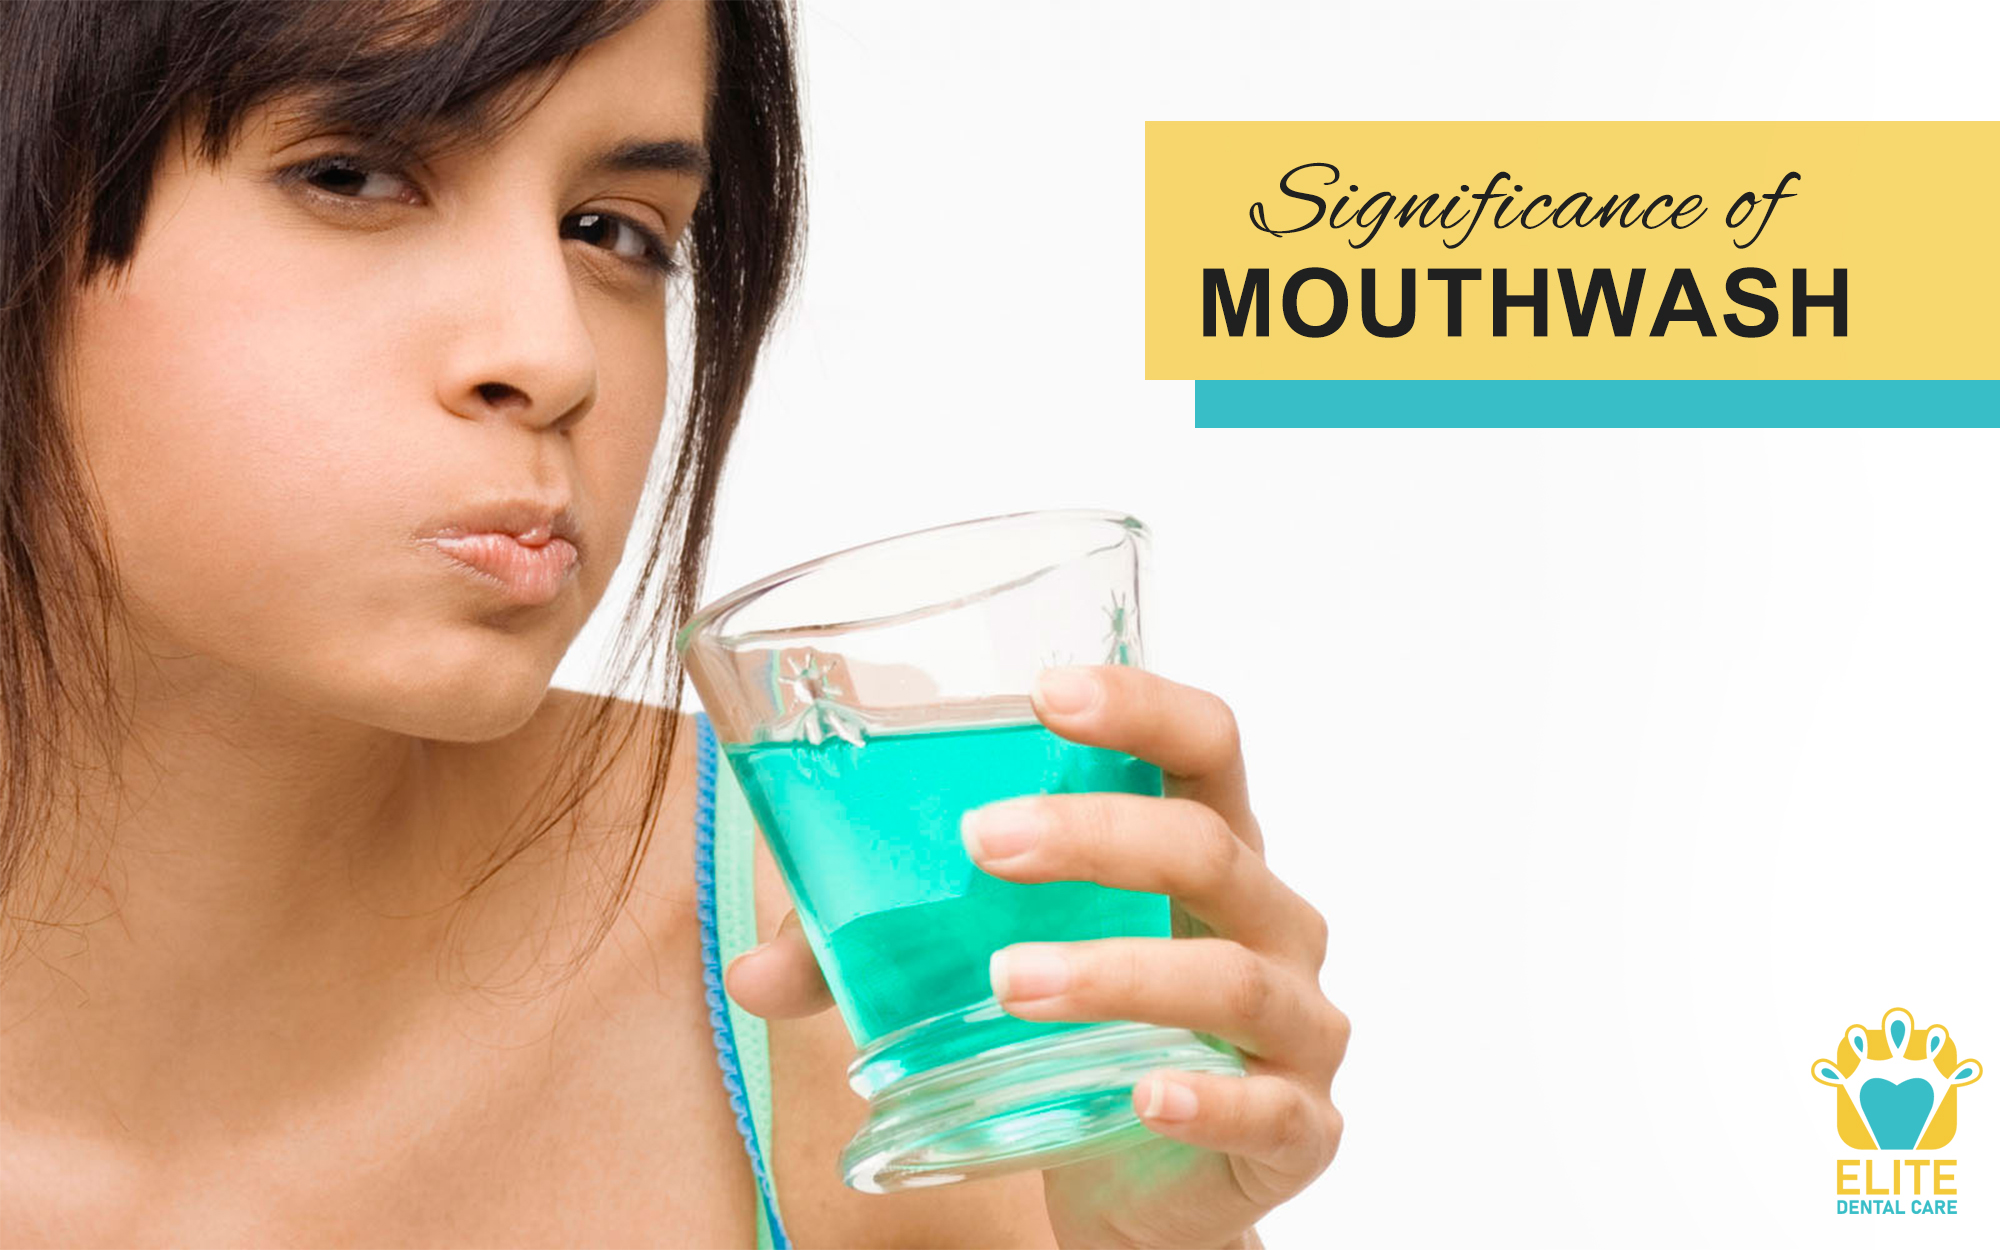 SIGNIFICANCE OF MOUTHWASH